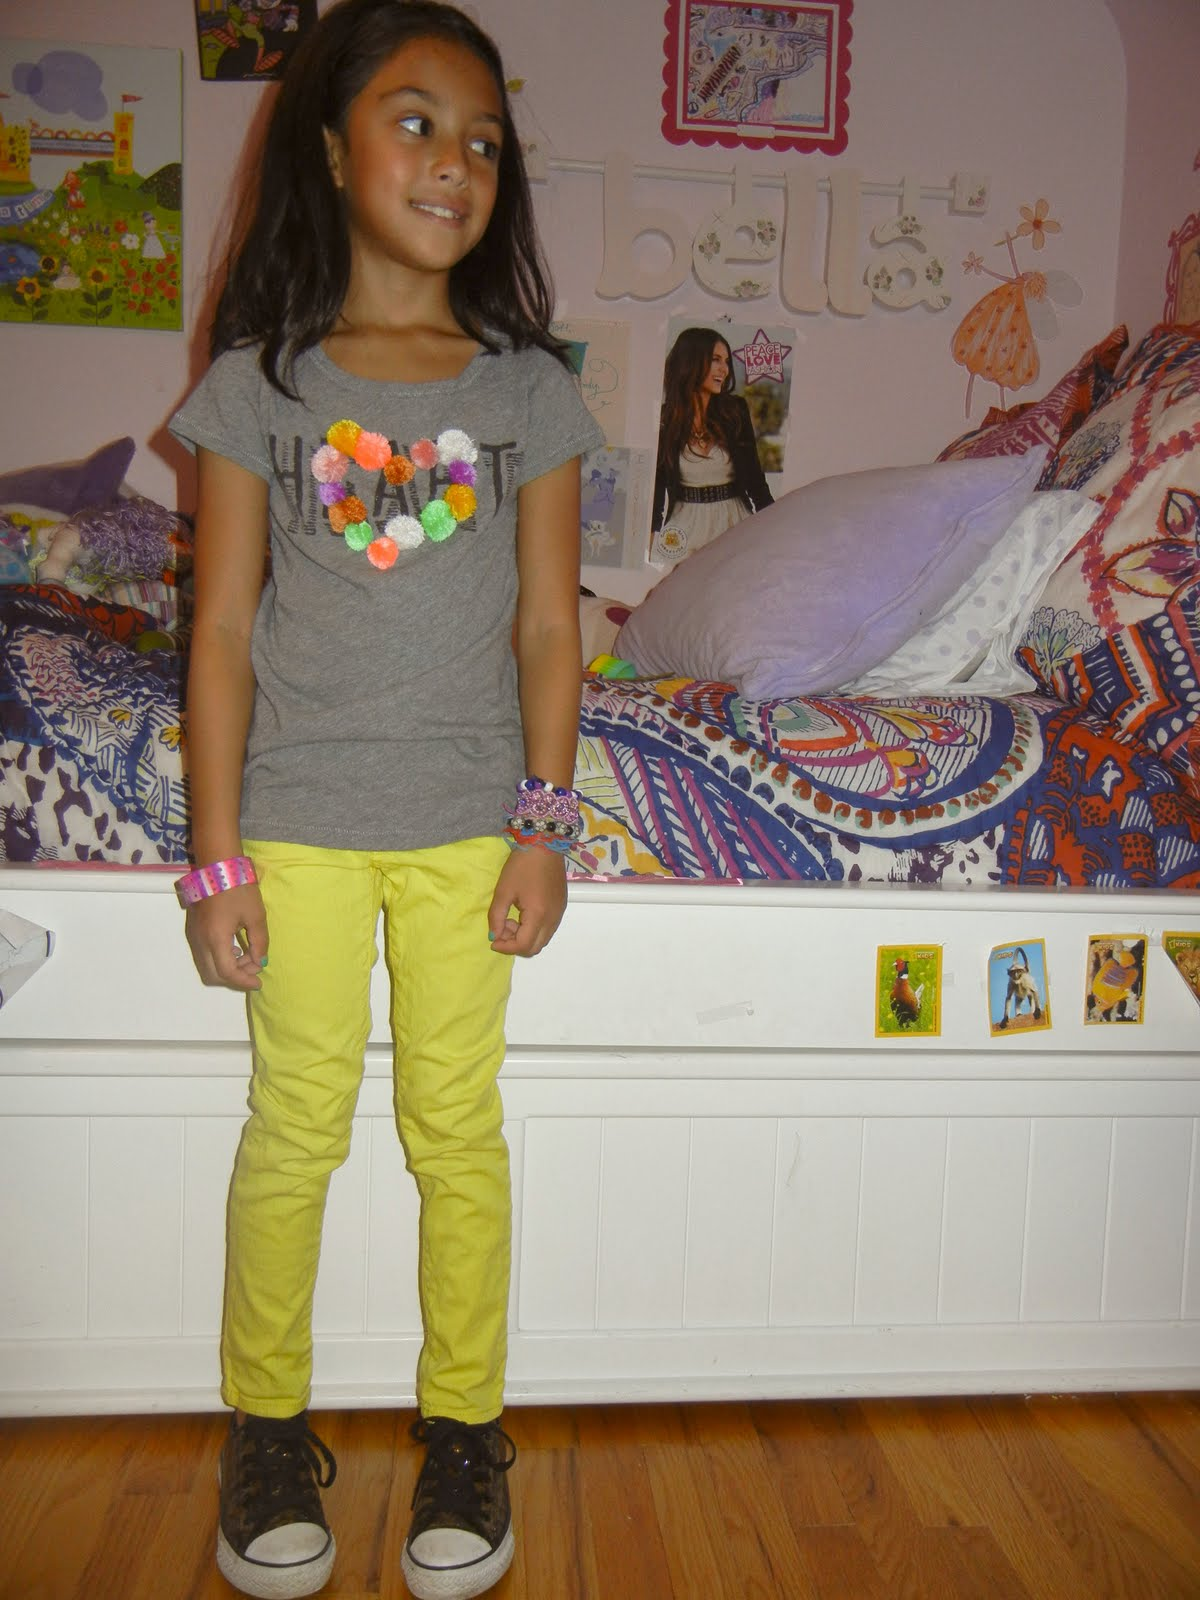 Skinny jeans for 8 year olds